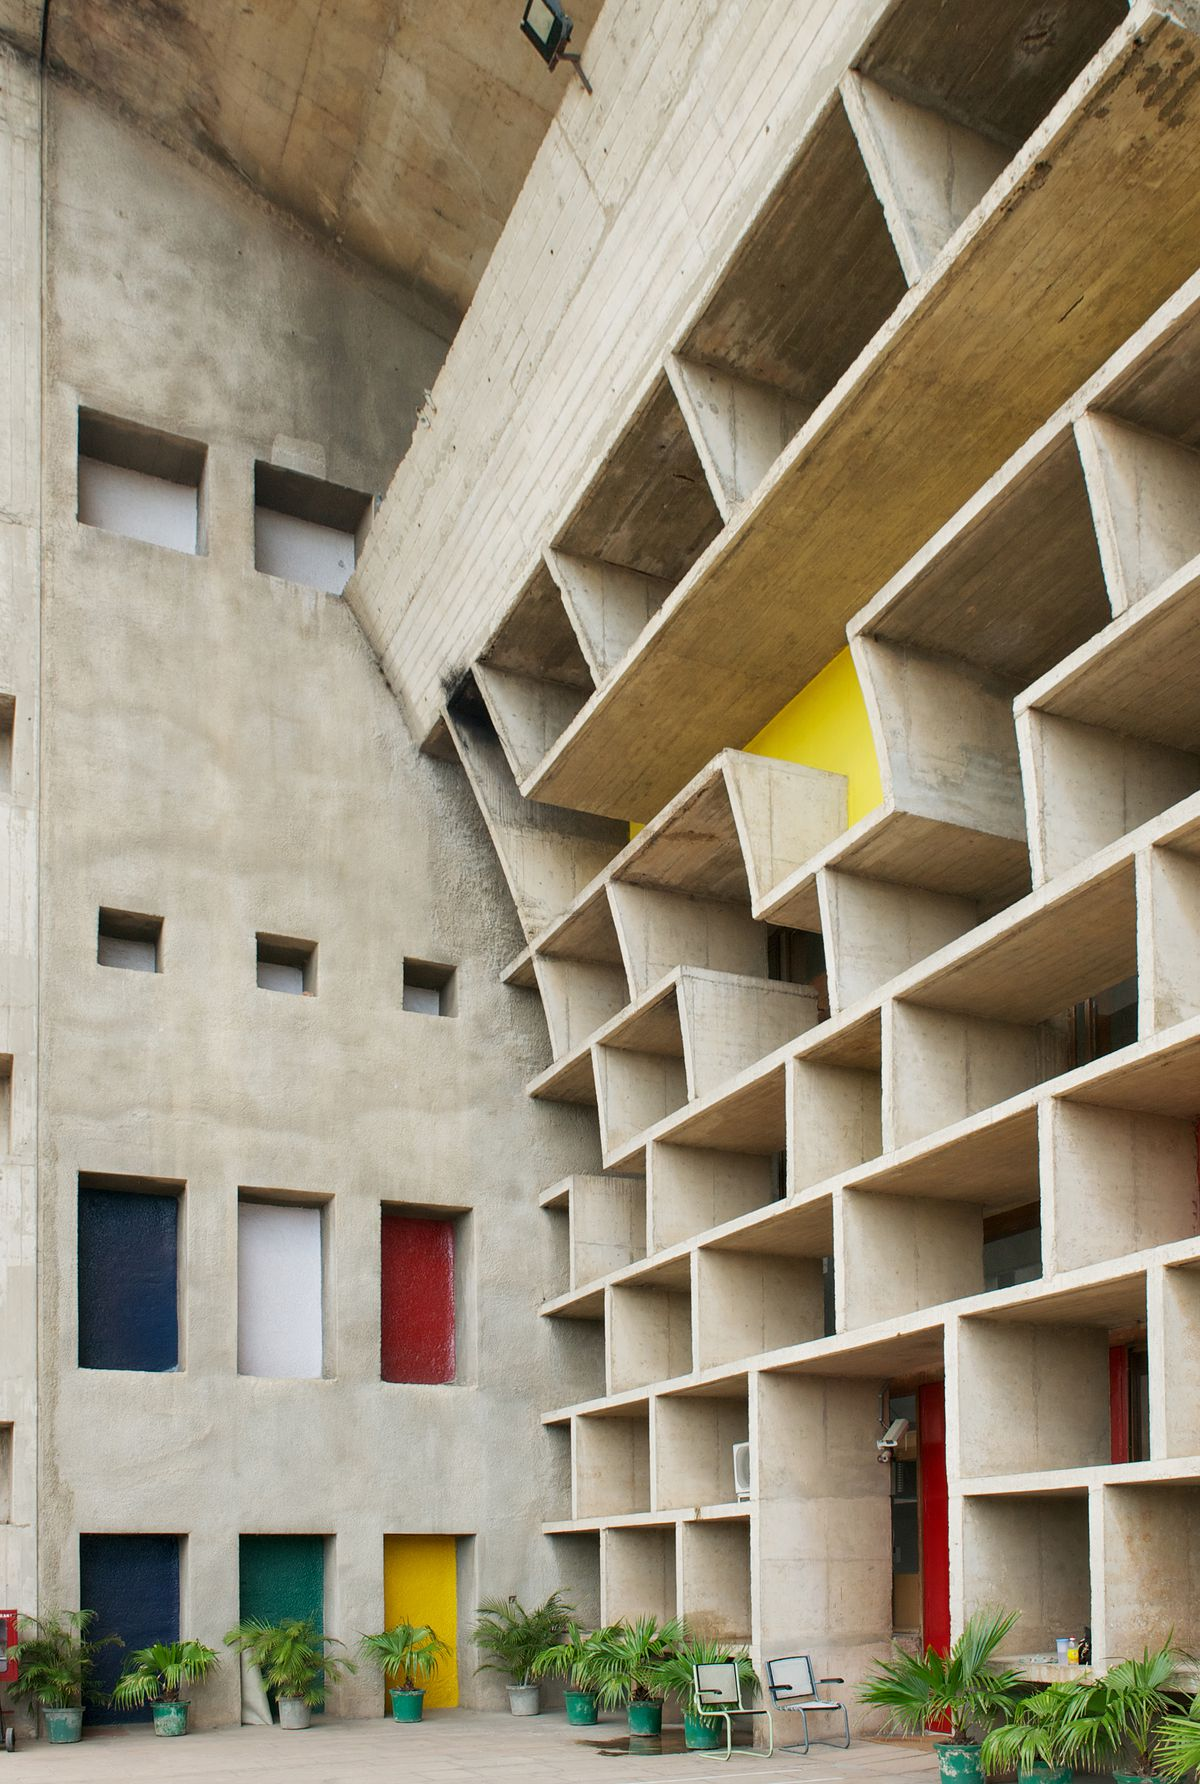 Le Corbusier S Utopian City Chandigarh And Its Faded